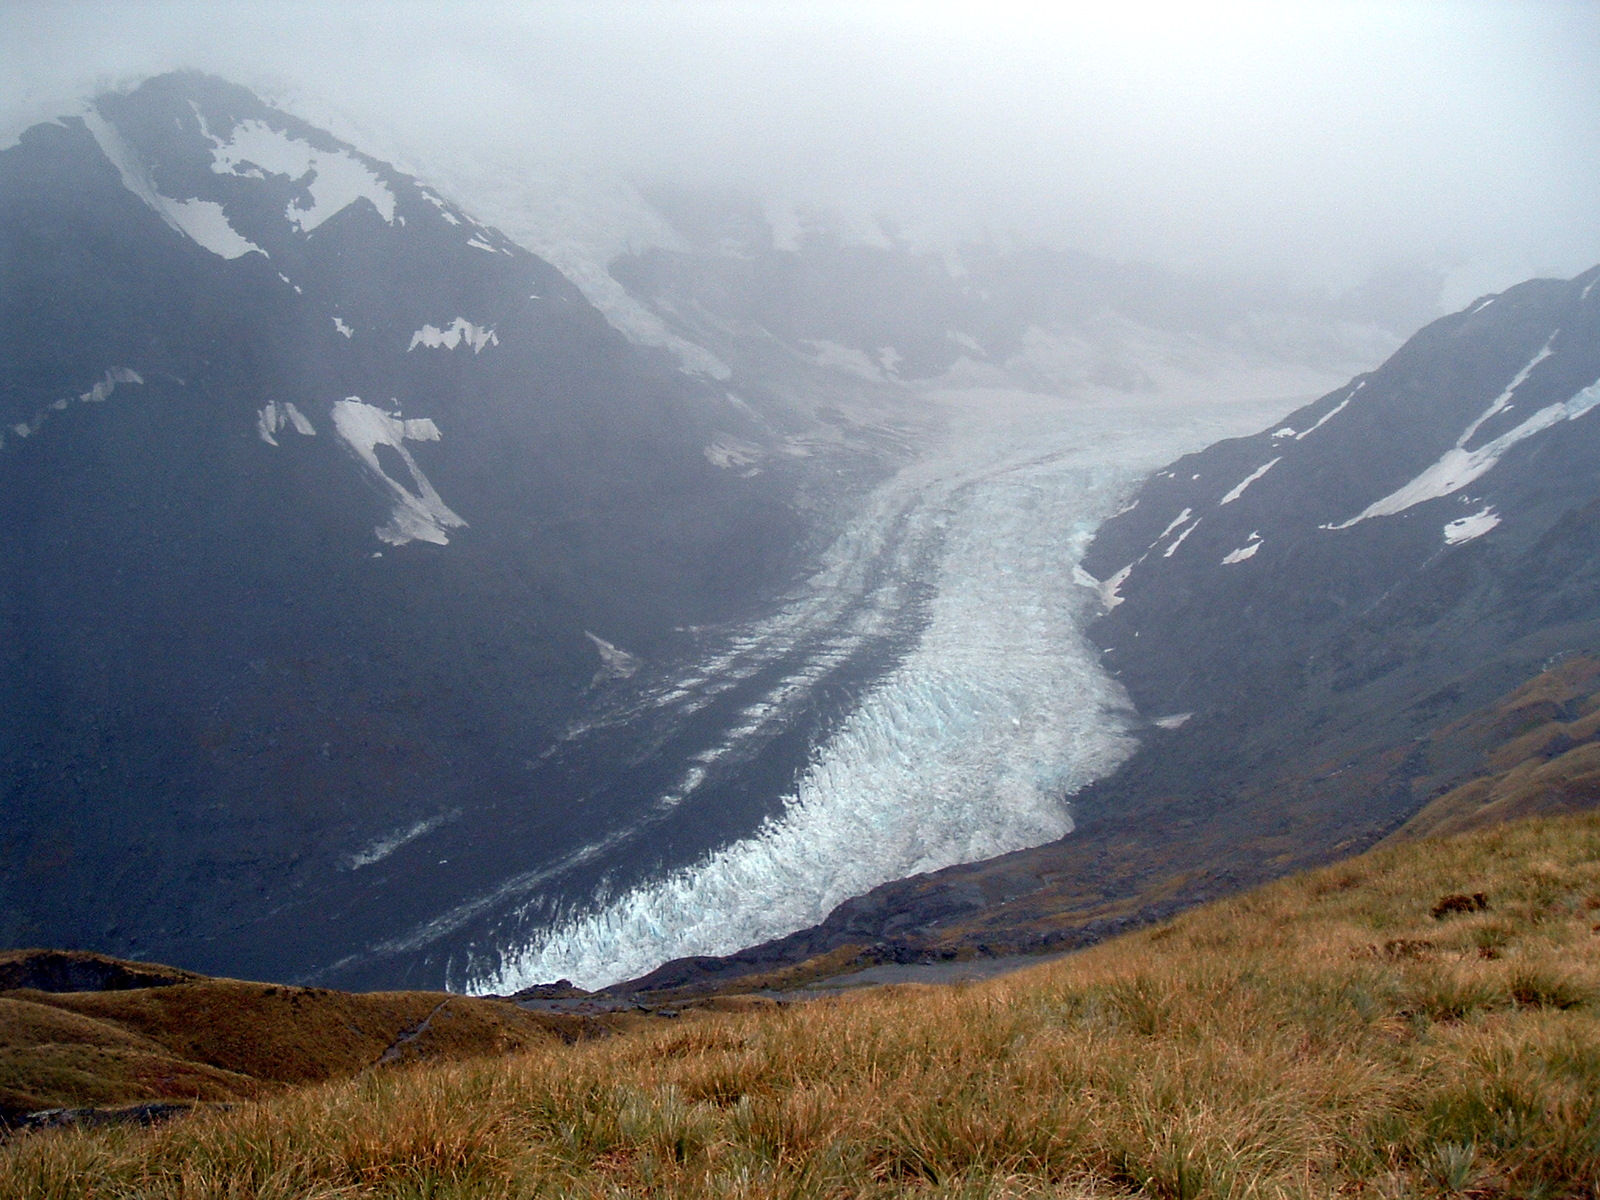 Southern tip of the Dart Glacier